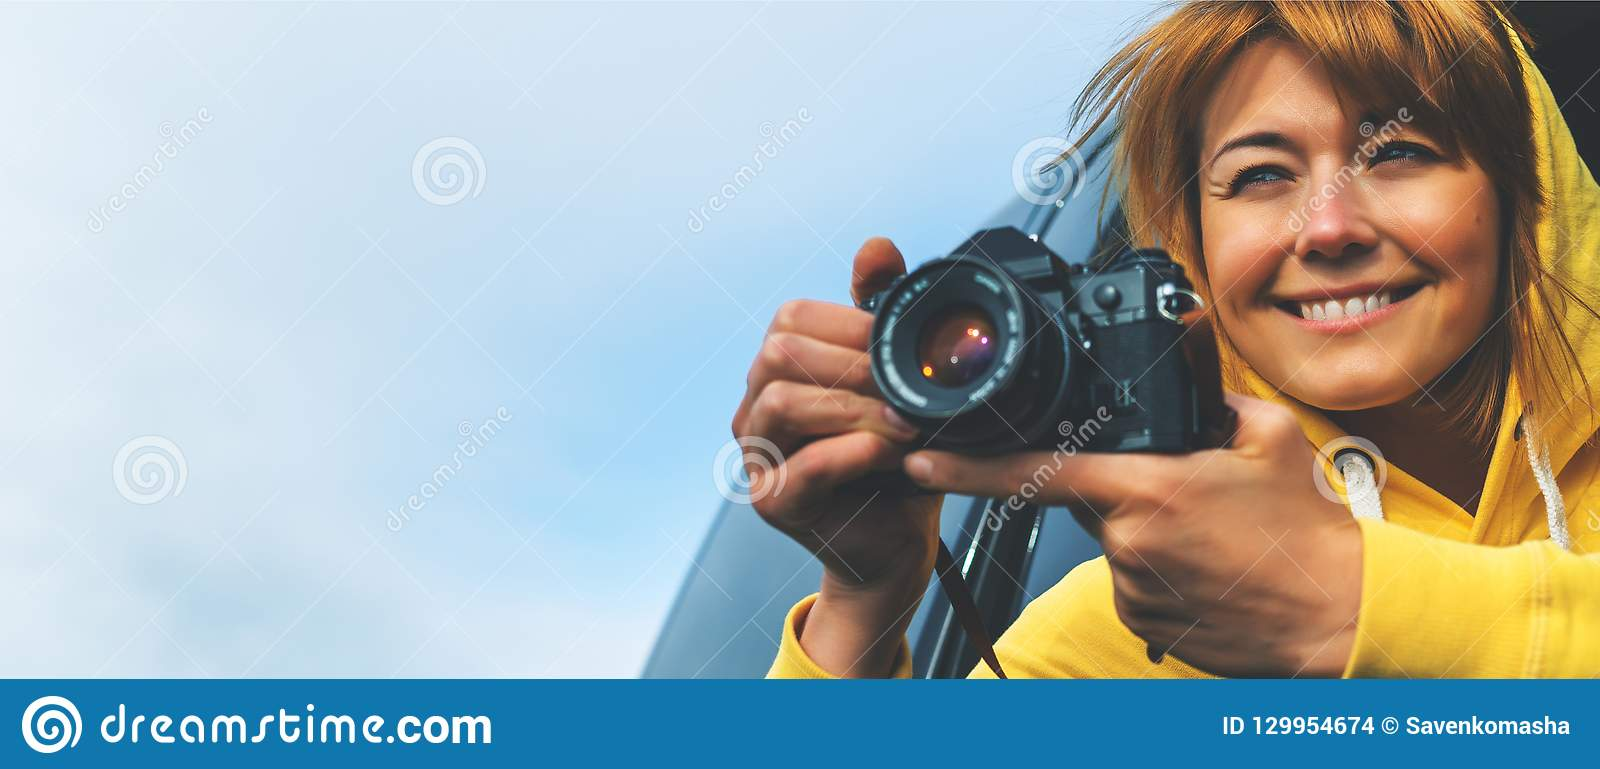 Smile tourist girl in an open window of a auto car taking photography click on retro vintage photo camera, photographer looking